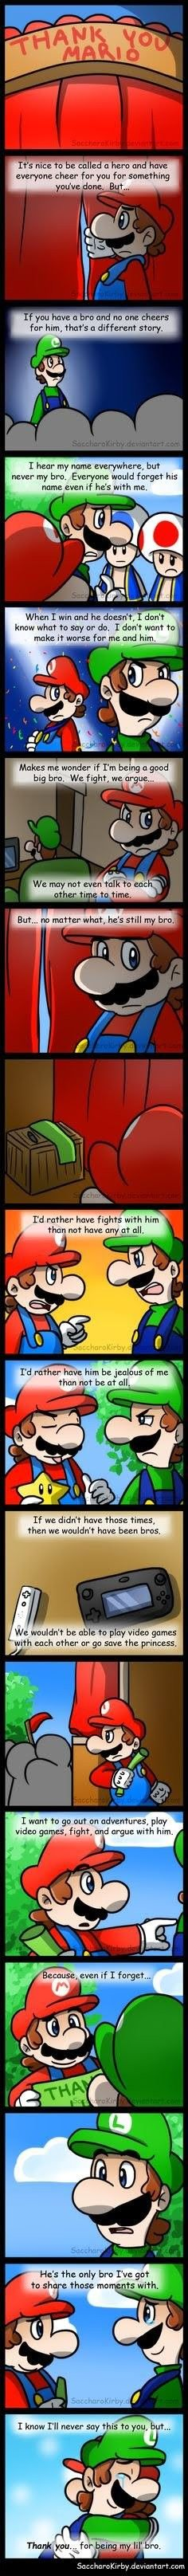 Geez, it's been a while since I've done a Mario comic haha~ So as you may have noticed, this isn't like my other comics (and definitely not as long lol! Seventeen panels are a joy to draw! Video Game Memes, Video Games Funny, Funny Games, Mario Comics, Fun Comics, Super Mario Smash Bros, Comedy Comics, Nintendo World, Paper Mario